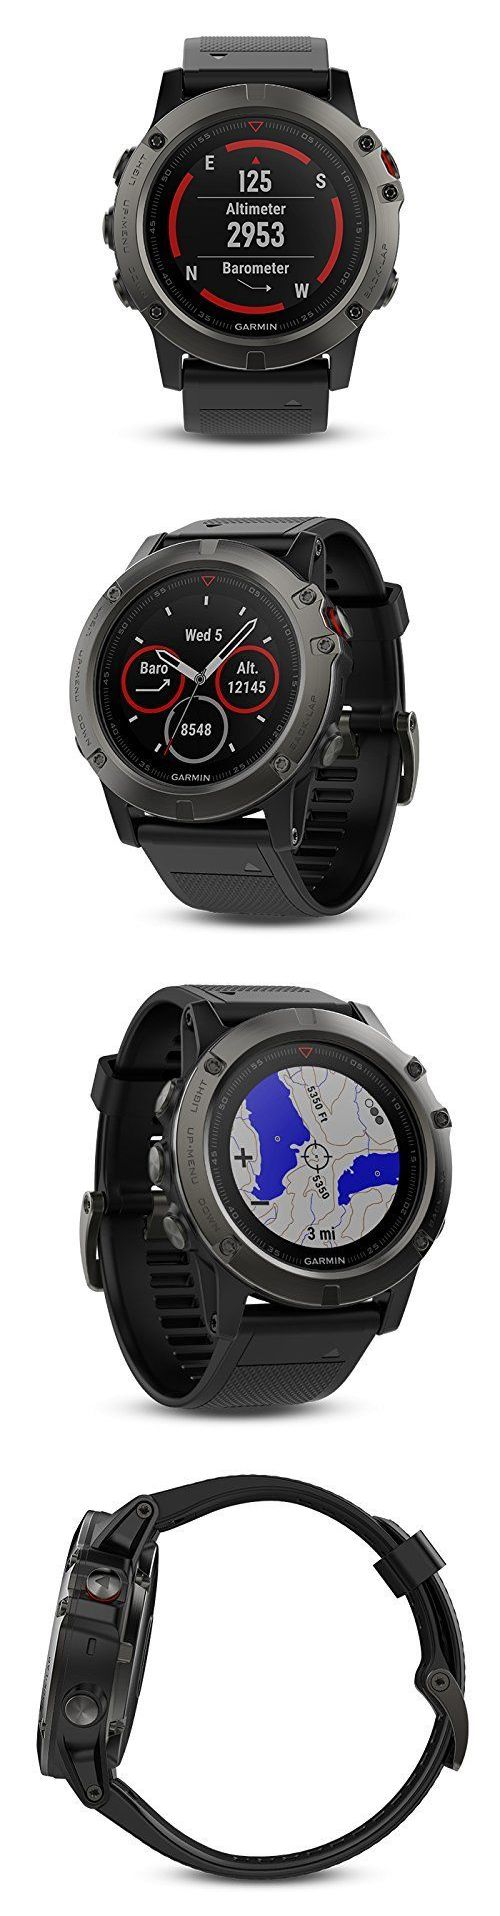 Gps And Running Watches 75230 Garmin Fenix 5x Sapphire Slate Gray 5 Grey With Black Band